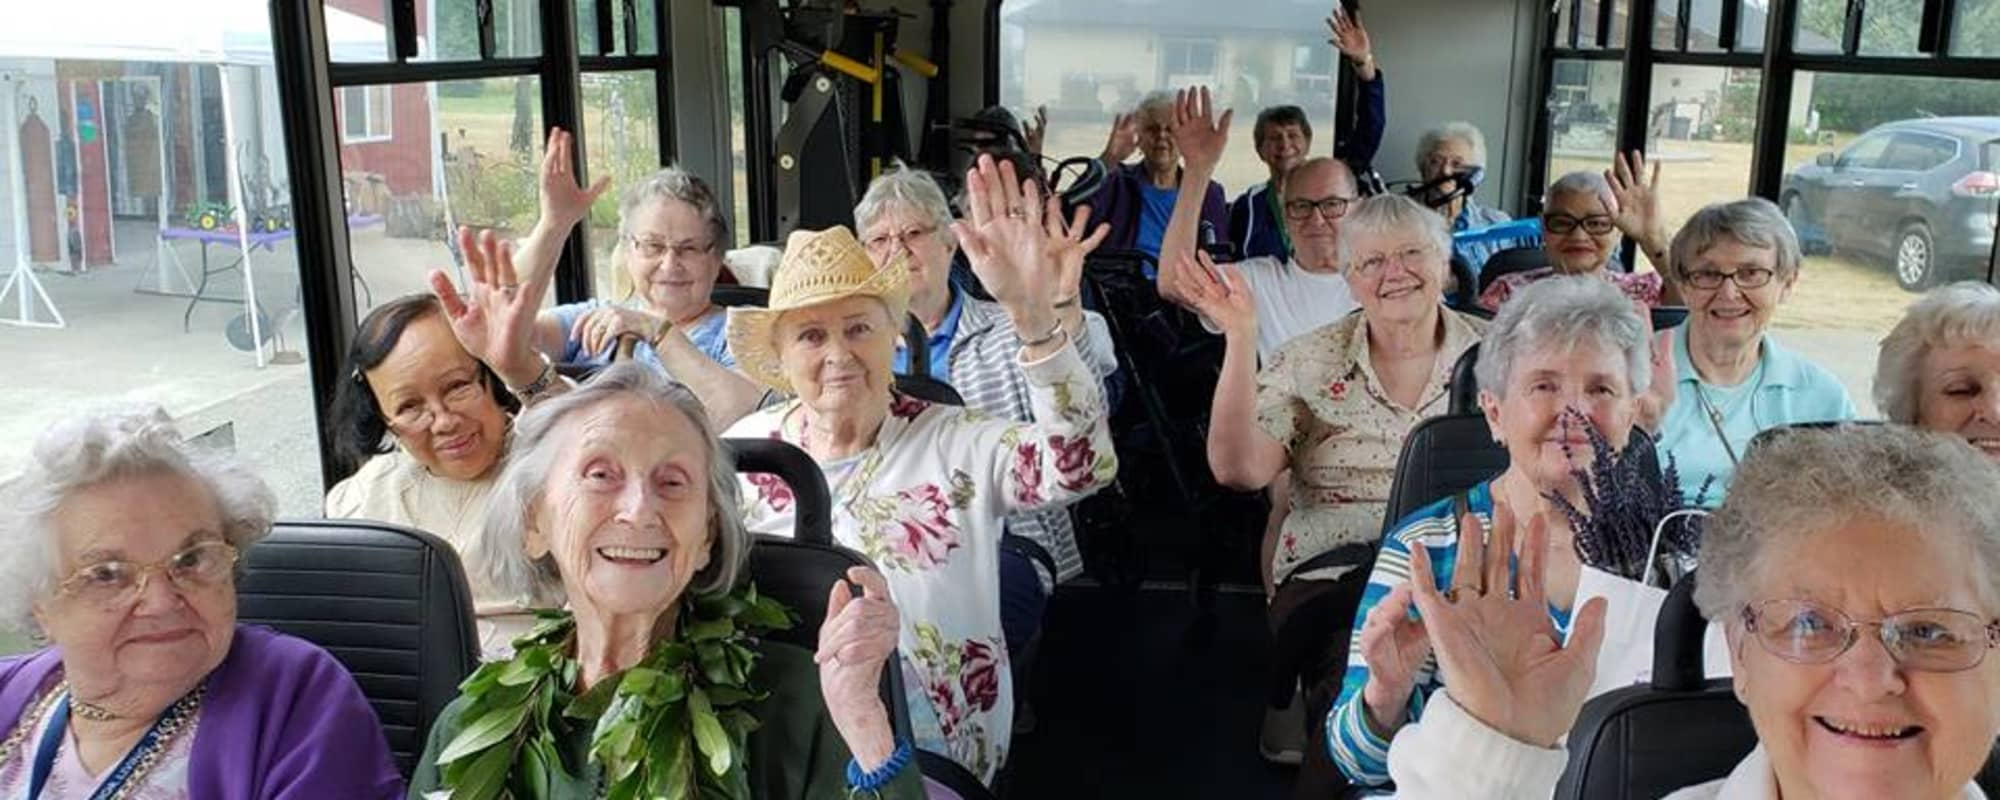 Bus Ride at The Firs in Olympia, Washington